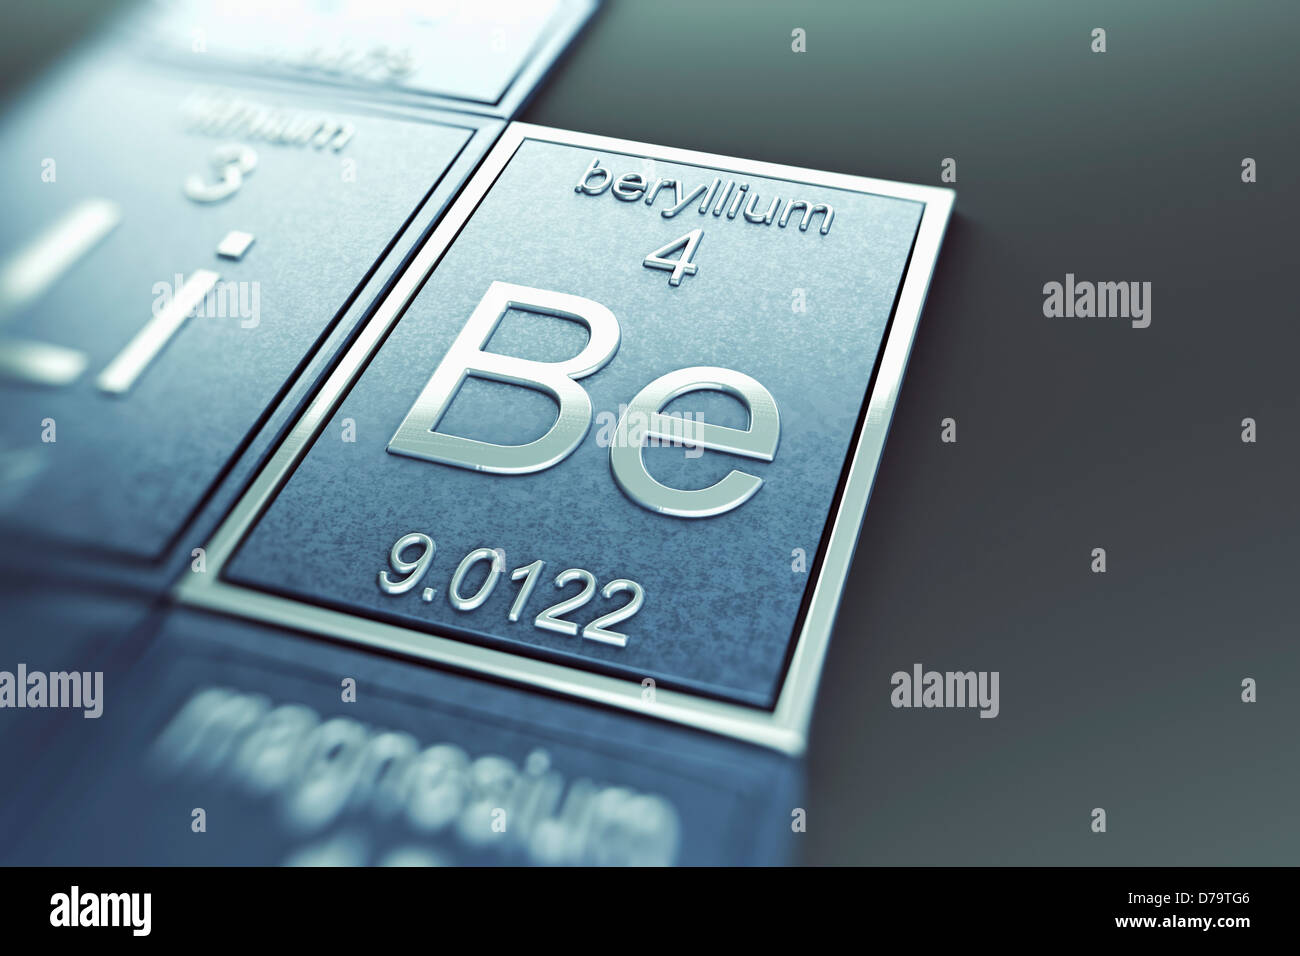 Beryllium chemical element stock photo 56150534 alamy beryllium chemical element buycottarizona Image collections